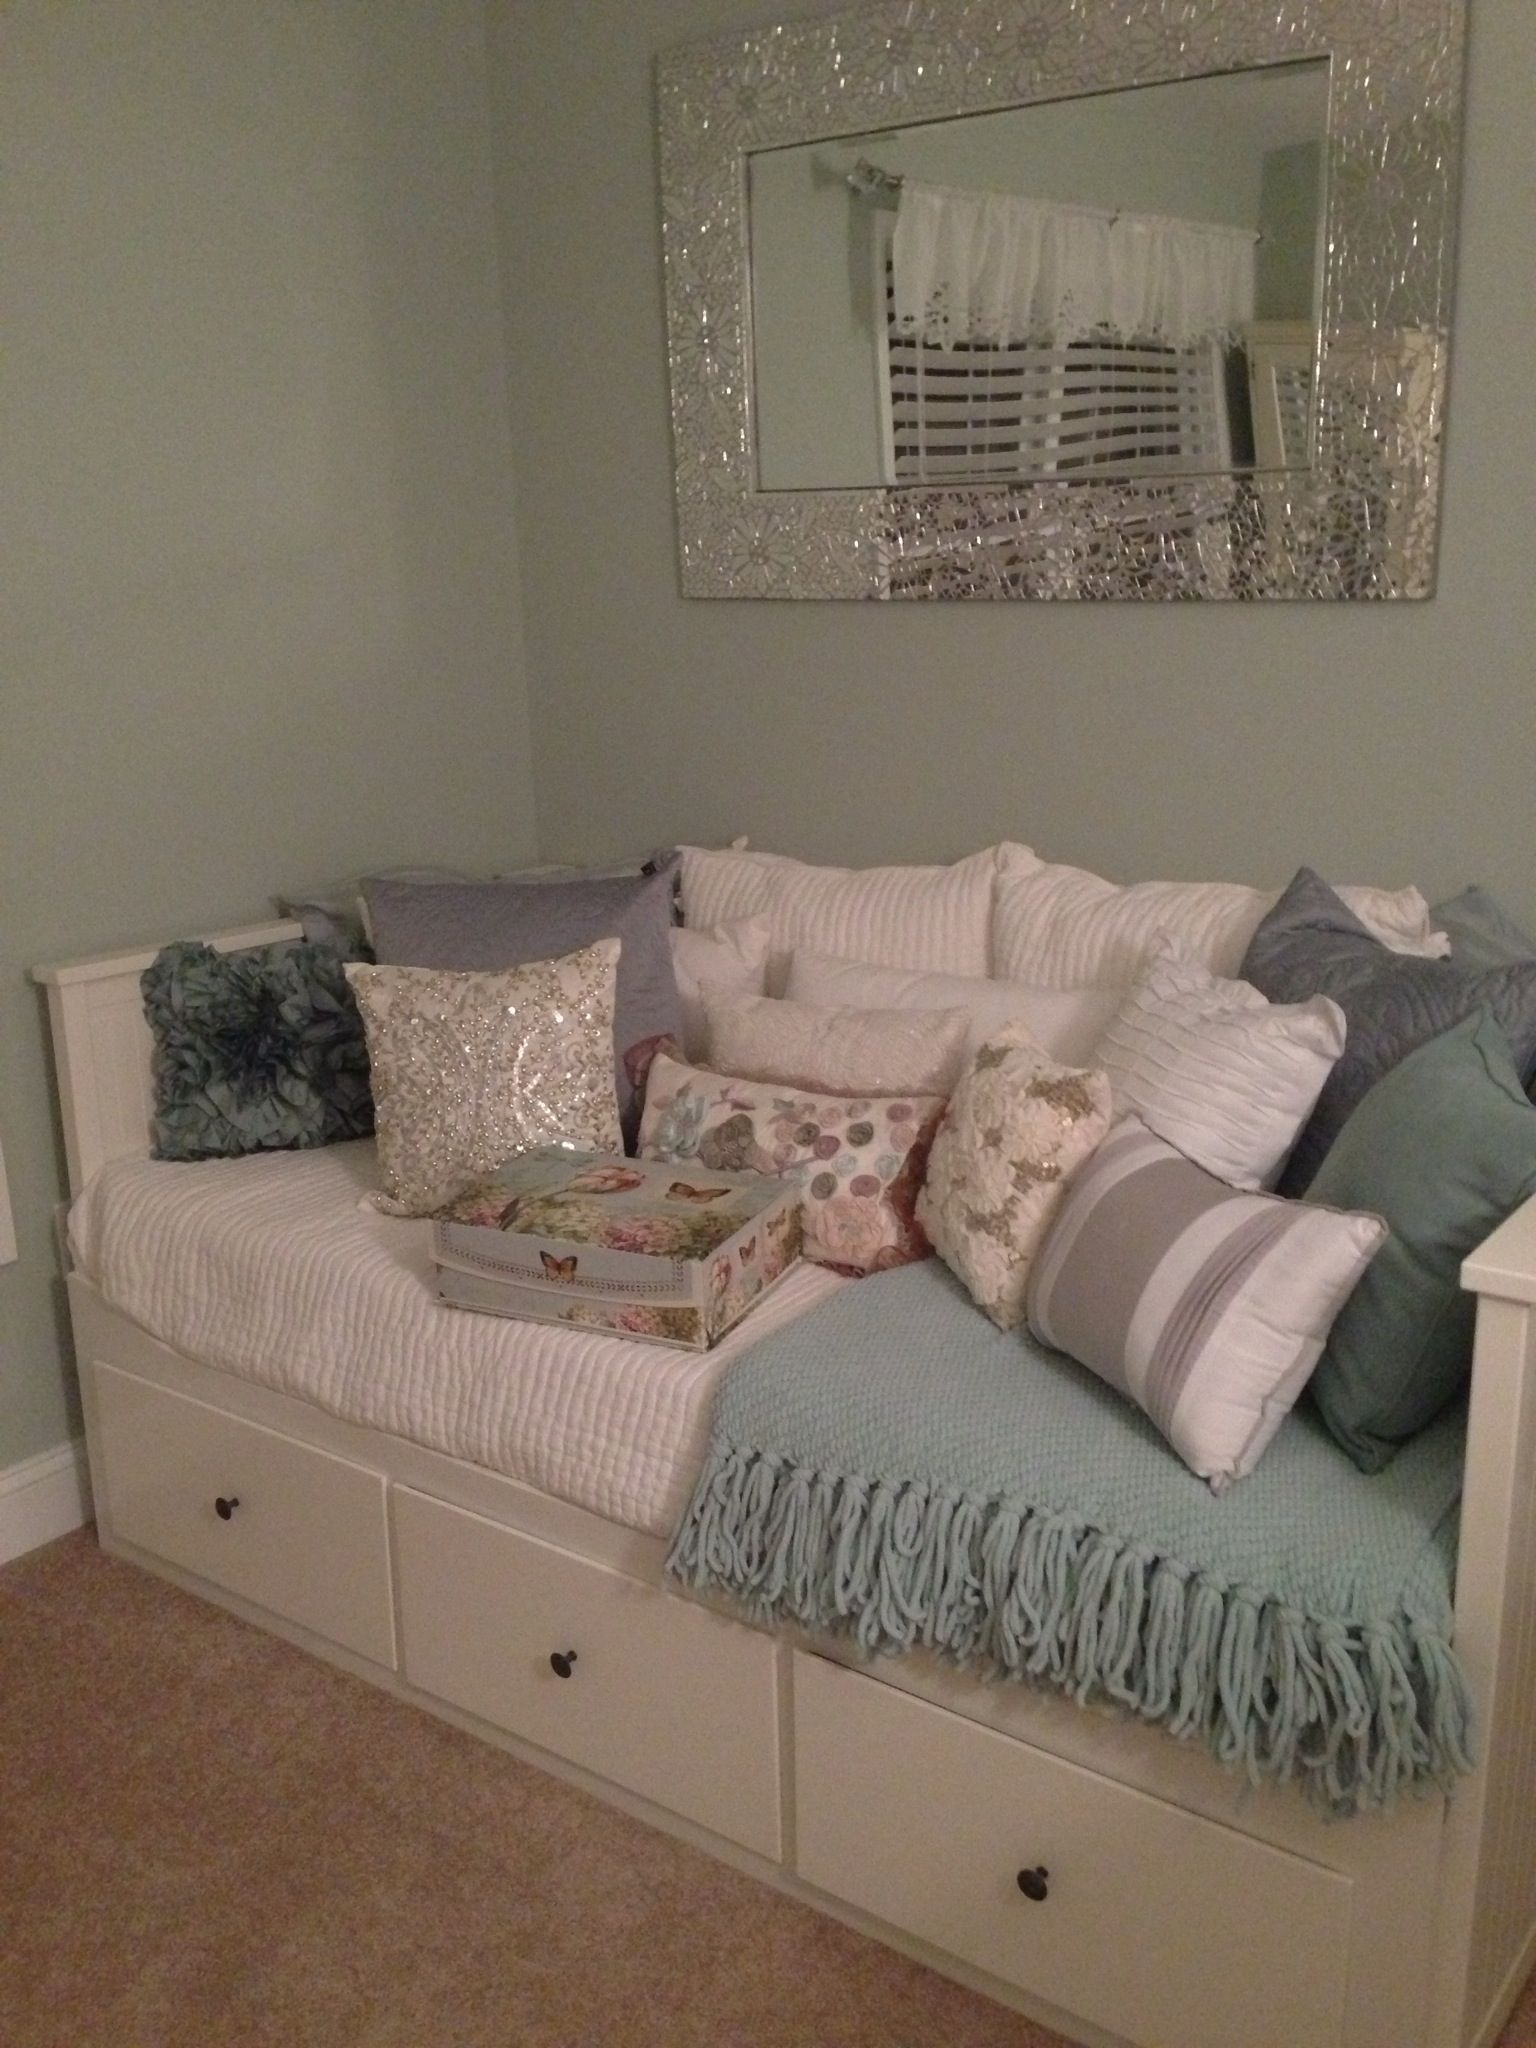 Ikea daybedless pillows change knobs on drawers love the